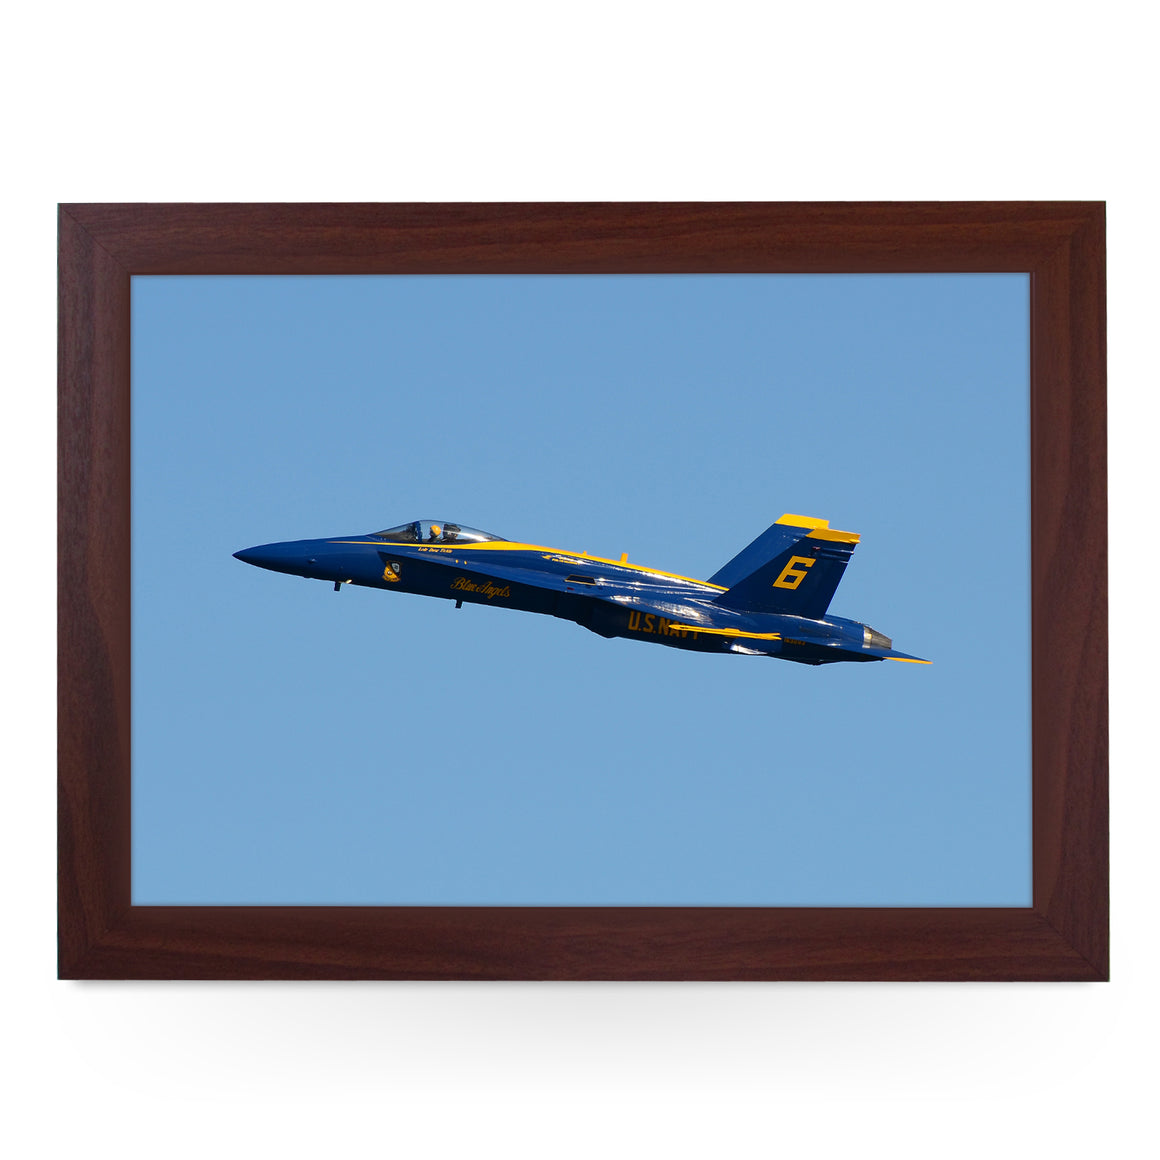 Boeing Blue Angels F/A-18 Hornet Plane Lap Tray - AD14071